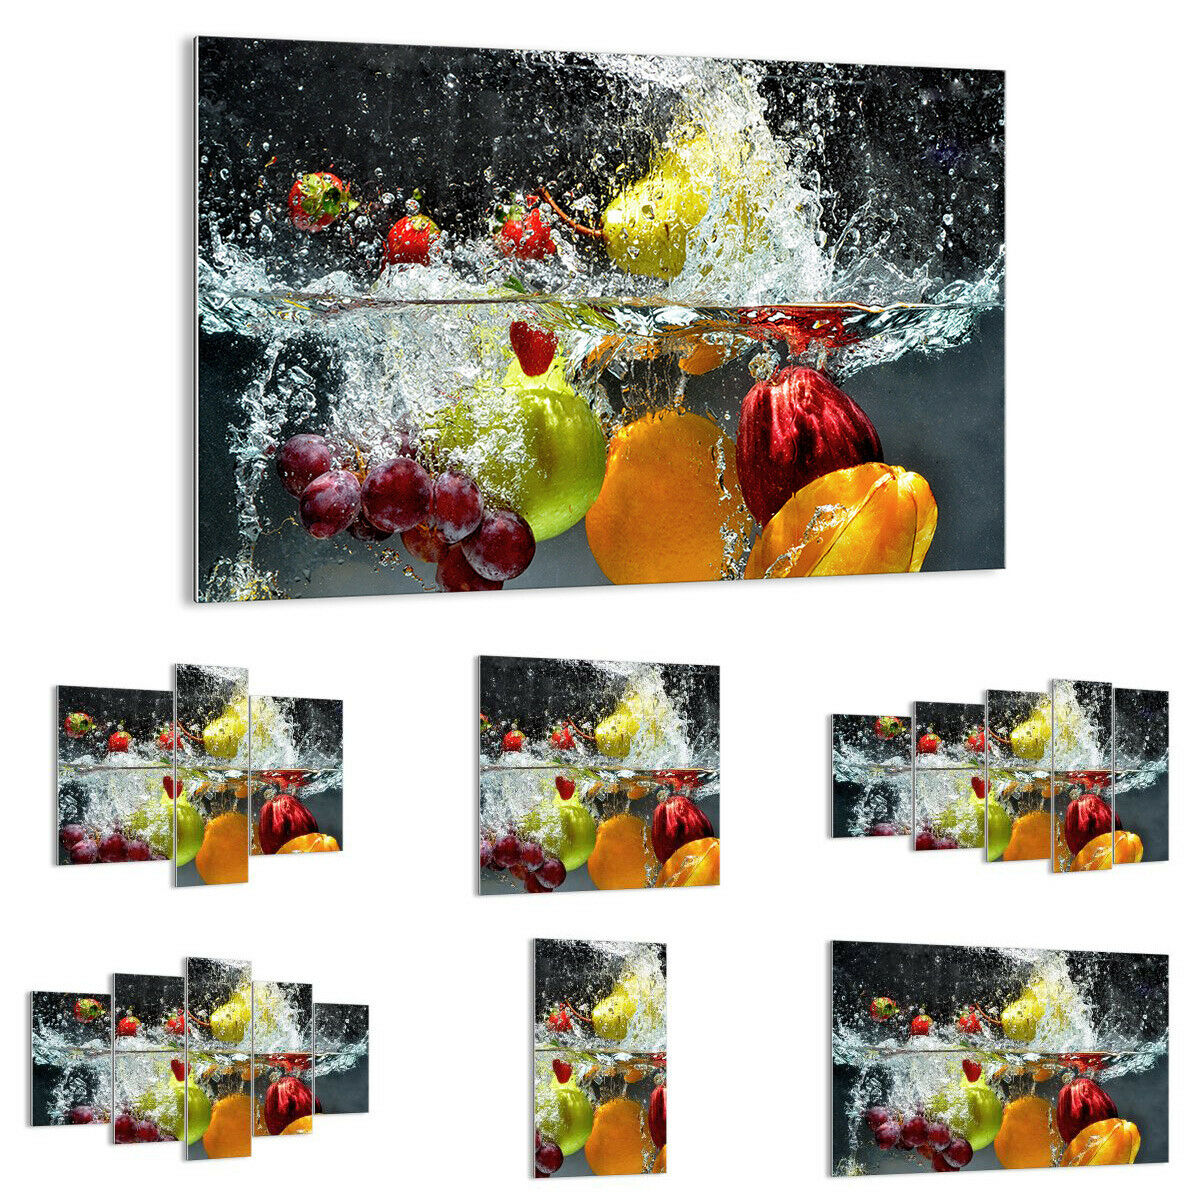 Glas DruckenS Image Wand Kunst Fruits Water Splash food 2972 UK